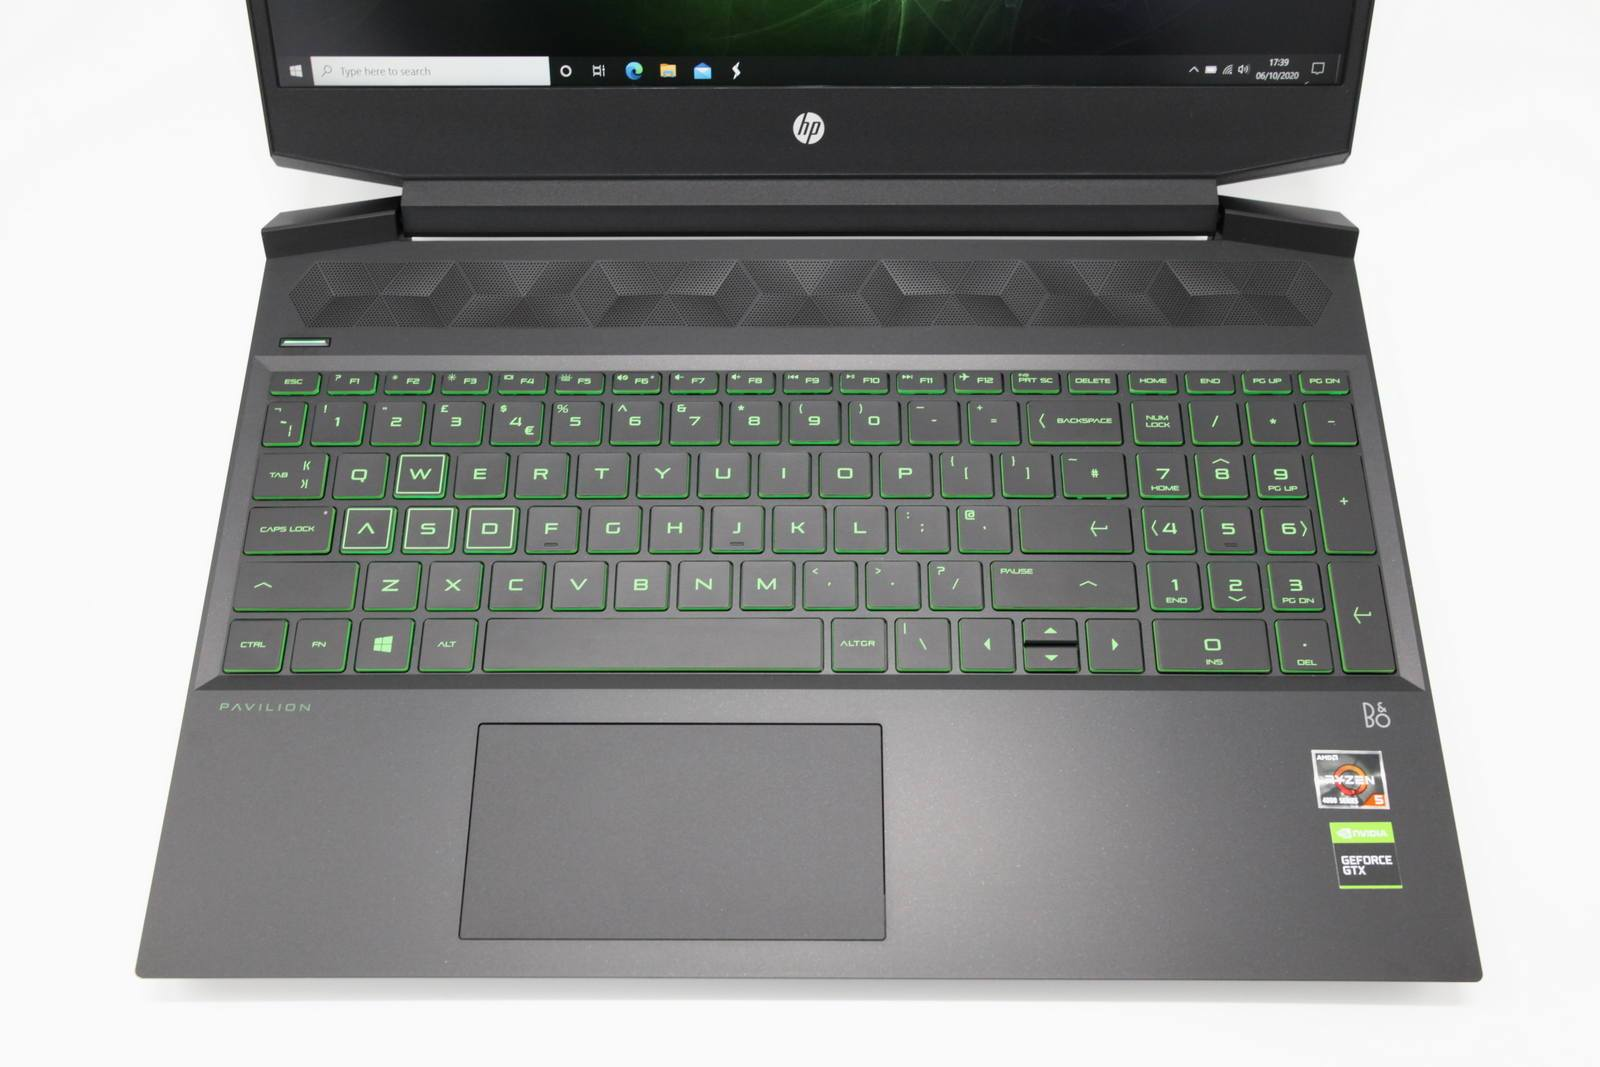 HP Pavilion Gaming Laptop: Ryzen 5 4600H, 8GB RAM,GTX 1050, 256GB Warranty - CruiseTech